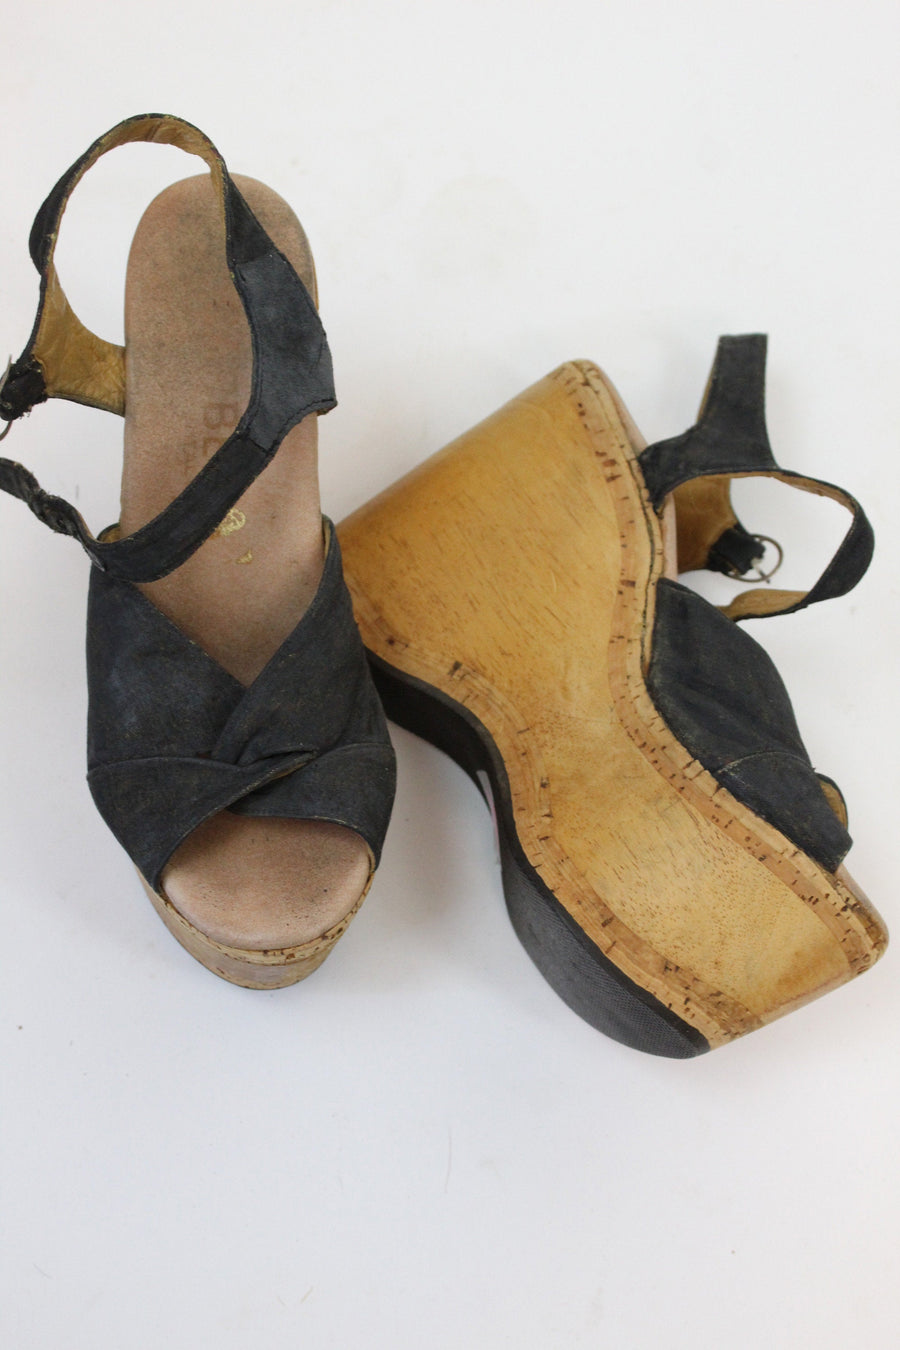 1970s Carber cork platforms size 6.5 us | vintage wood wedge shoes | new in